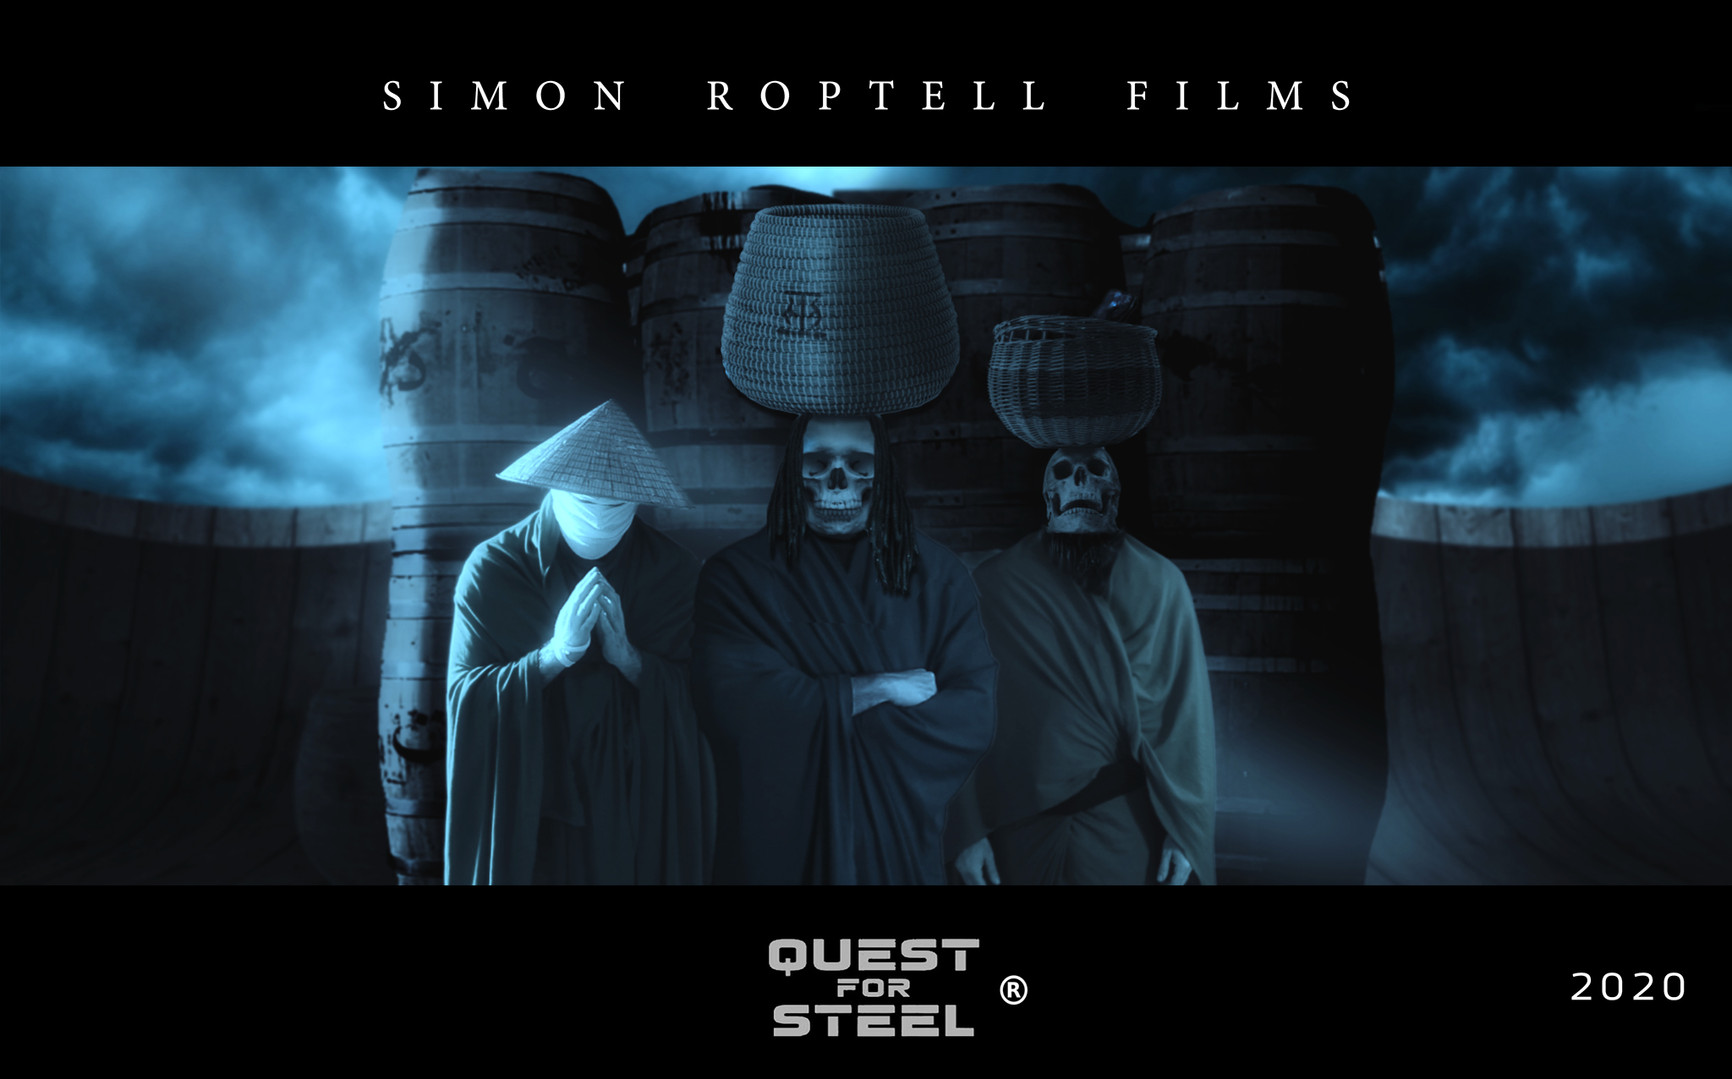 Skeleton crew. Quest for Steel. Simon Roptell Films